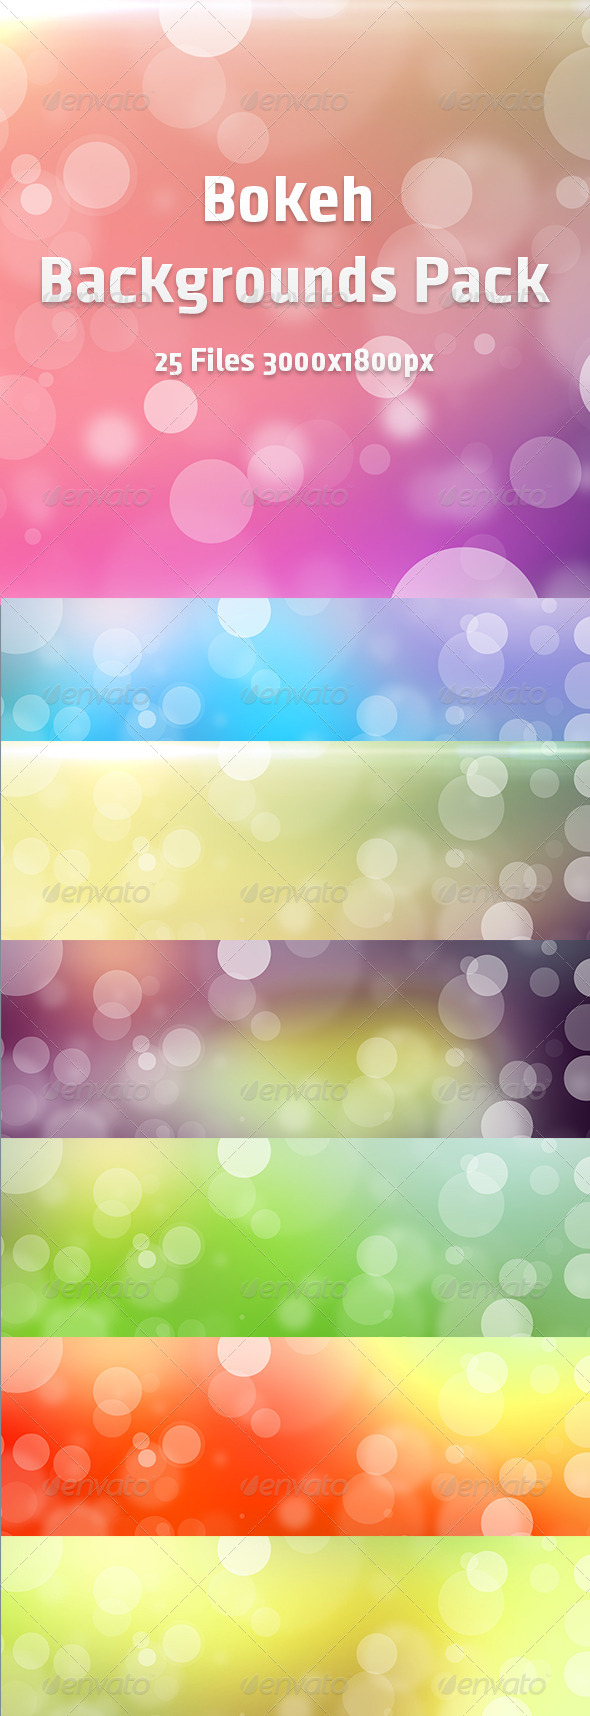 Bokeh Backgrounds Pack - Backgrounds Graphics